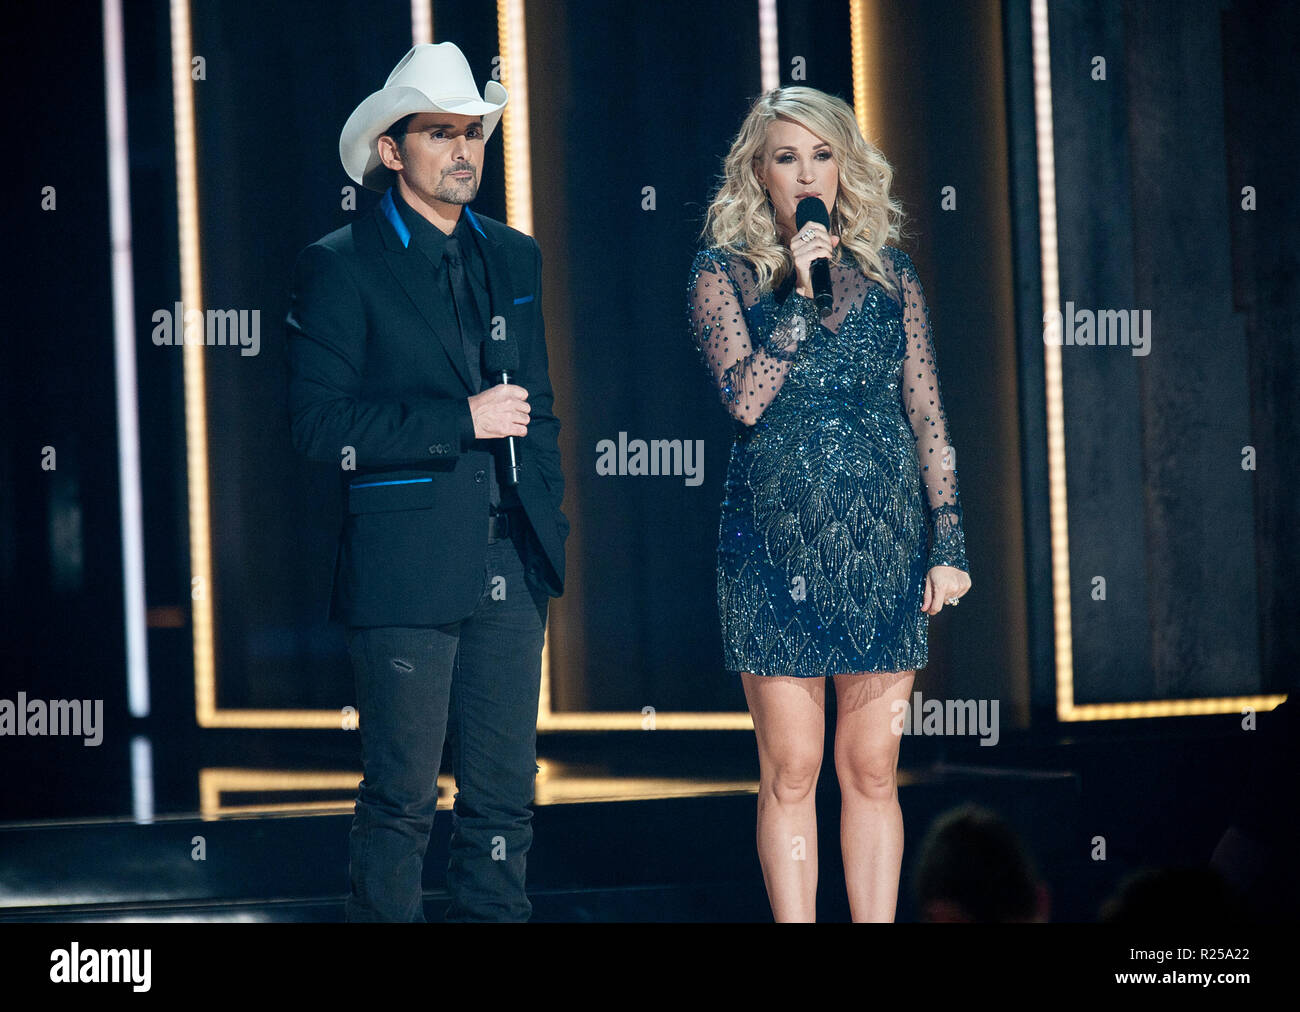 Nov. 14, 2018 - Nashville, Tennessee; USA -   BRAD PAISLEY and CARRIE UNDERWOOD host the 52nd Annual CMA Awards that took place at the Bridgestone Arena located in downtown Nashville.  Copyright 2018 Jason Moore. (Credit Image: © Jason Moore/ZUMA Wire) - Stock Image